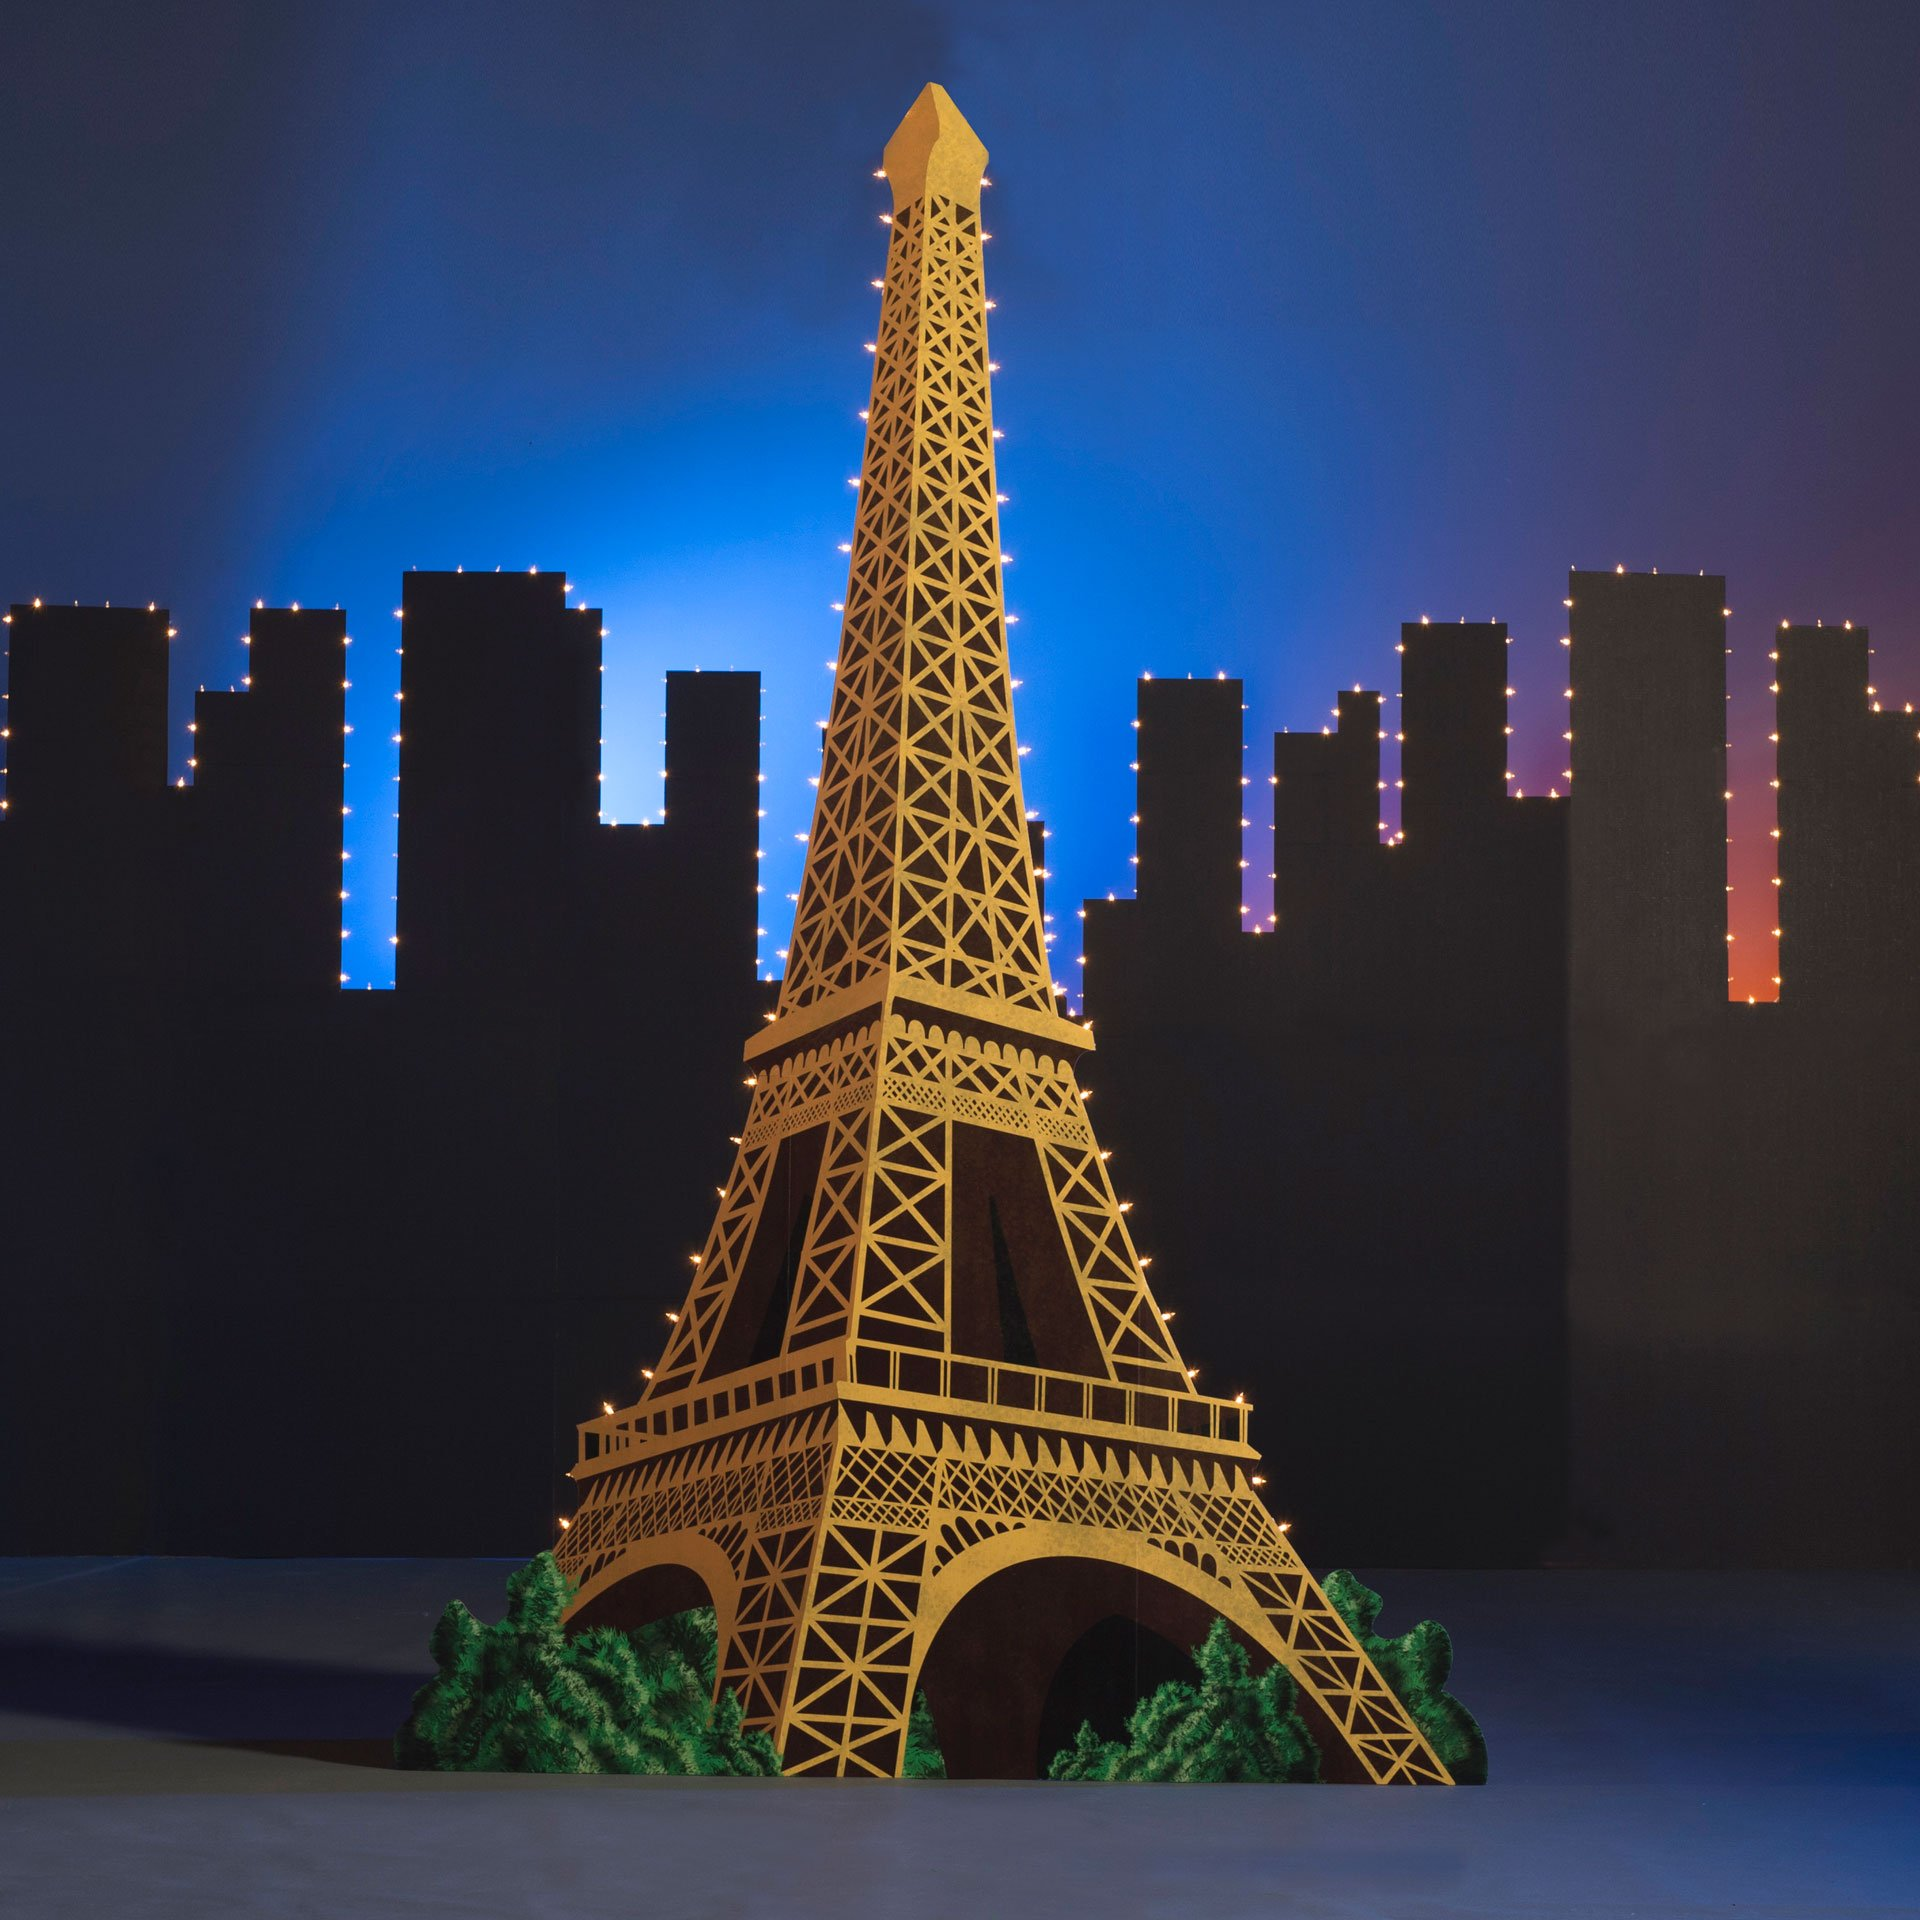 10 ft. 1 in. La Classique Paris France Lighted Eiffel Tower Standup Photo Booth Prop Background Backdrop Party Decoration Decor Scene Setter Cardboard Cutout